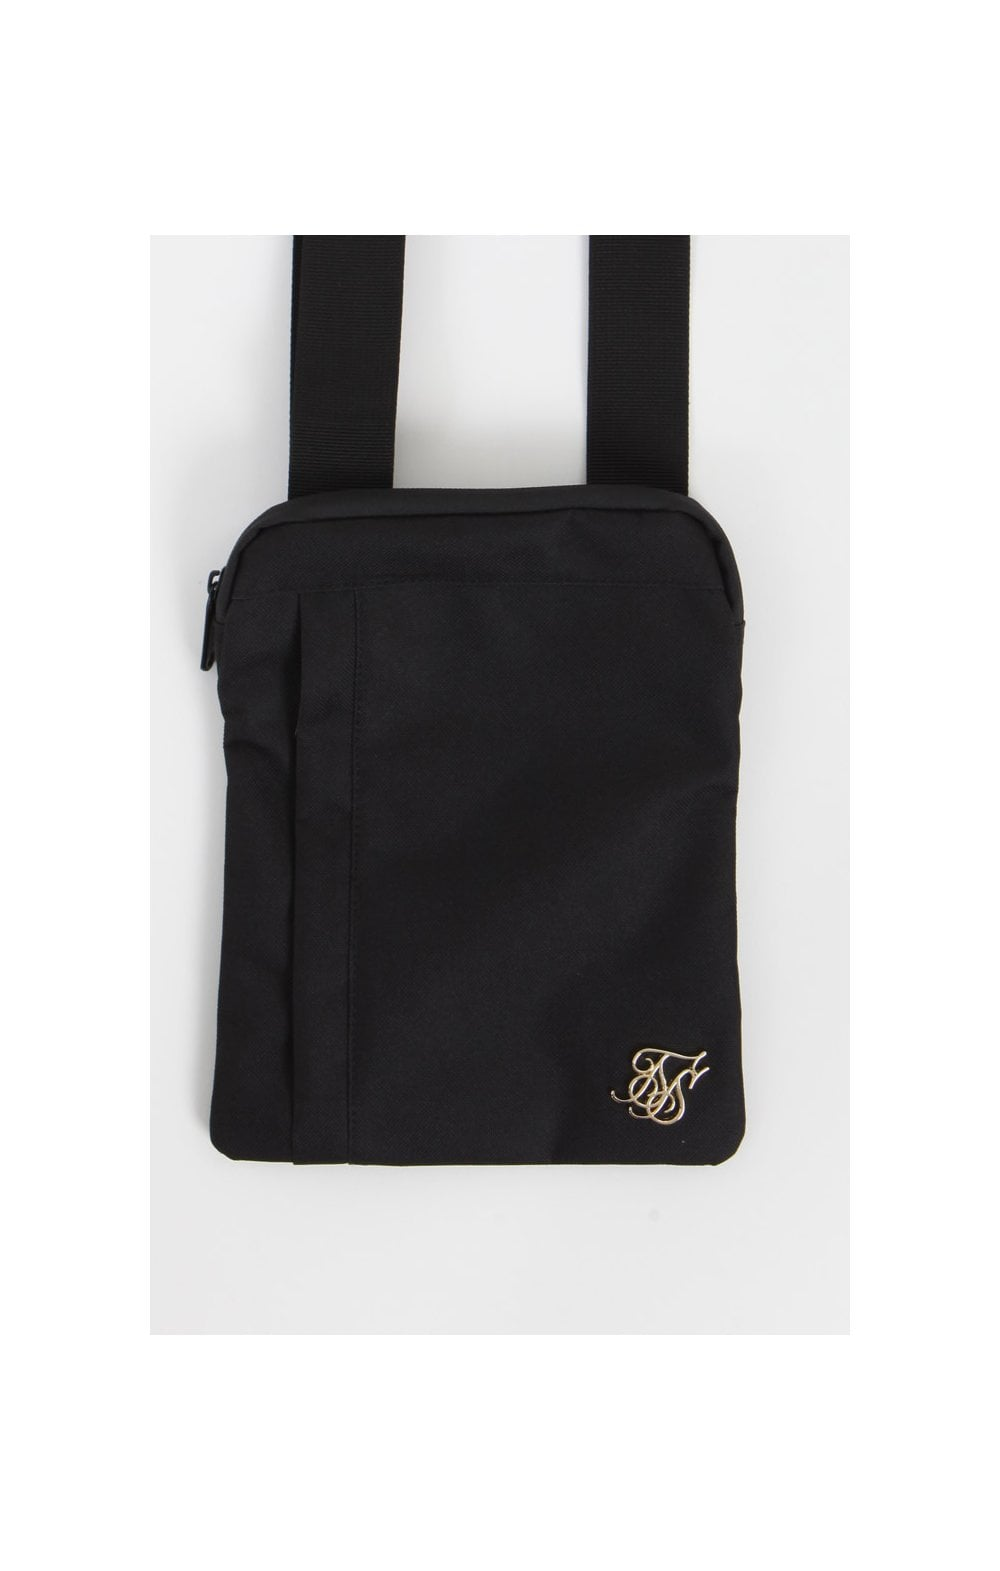 Load image into Gallery viewer, SikSilk Flight Bag - Black & Gold (1)